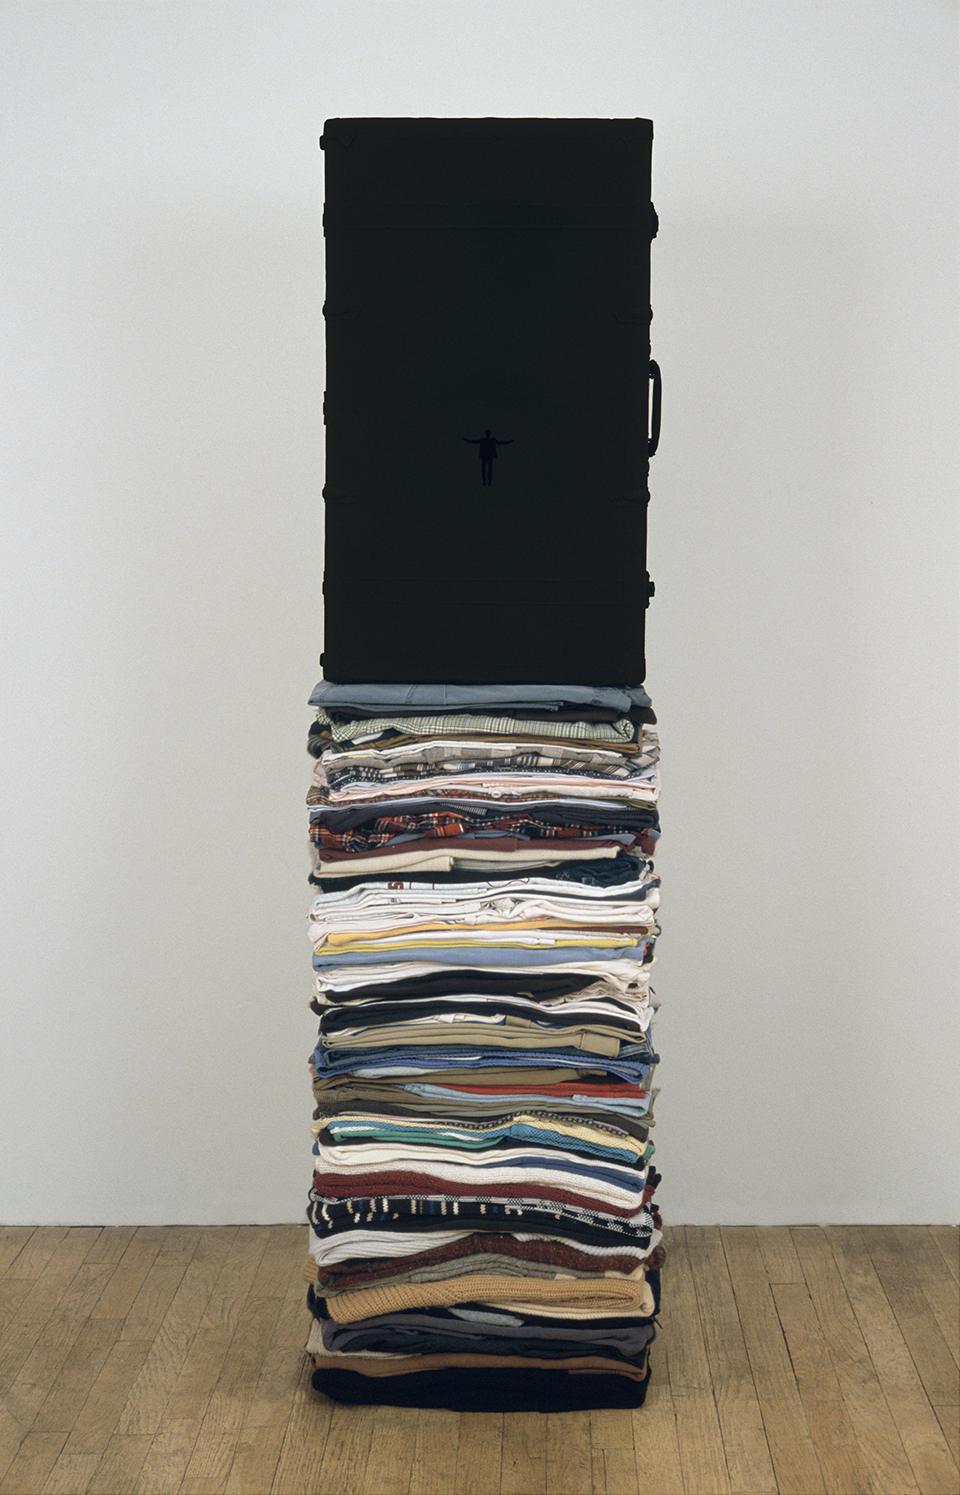 Suspension 4, 2002